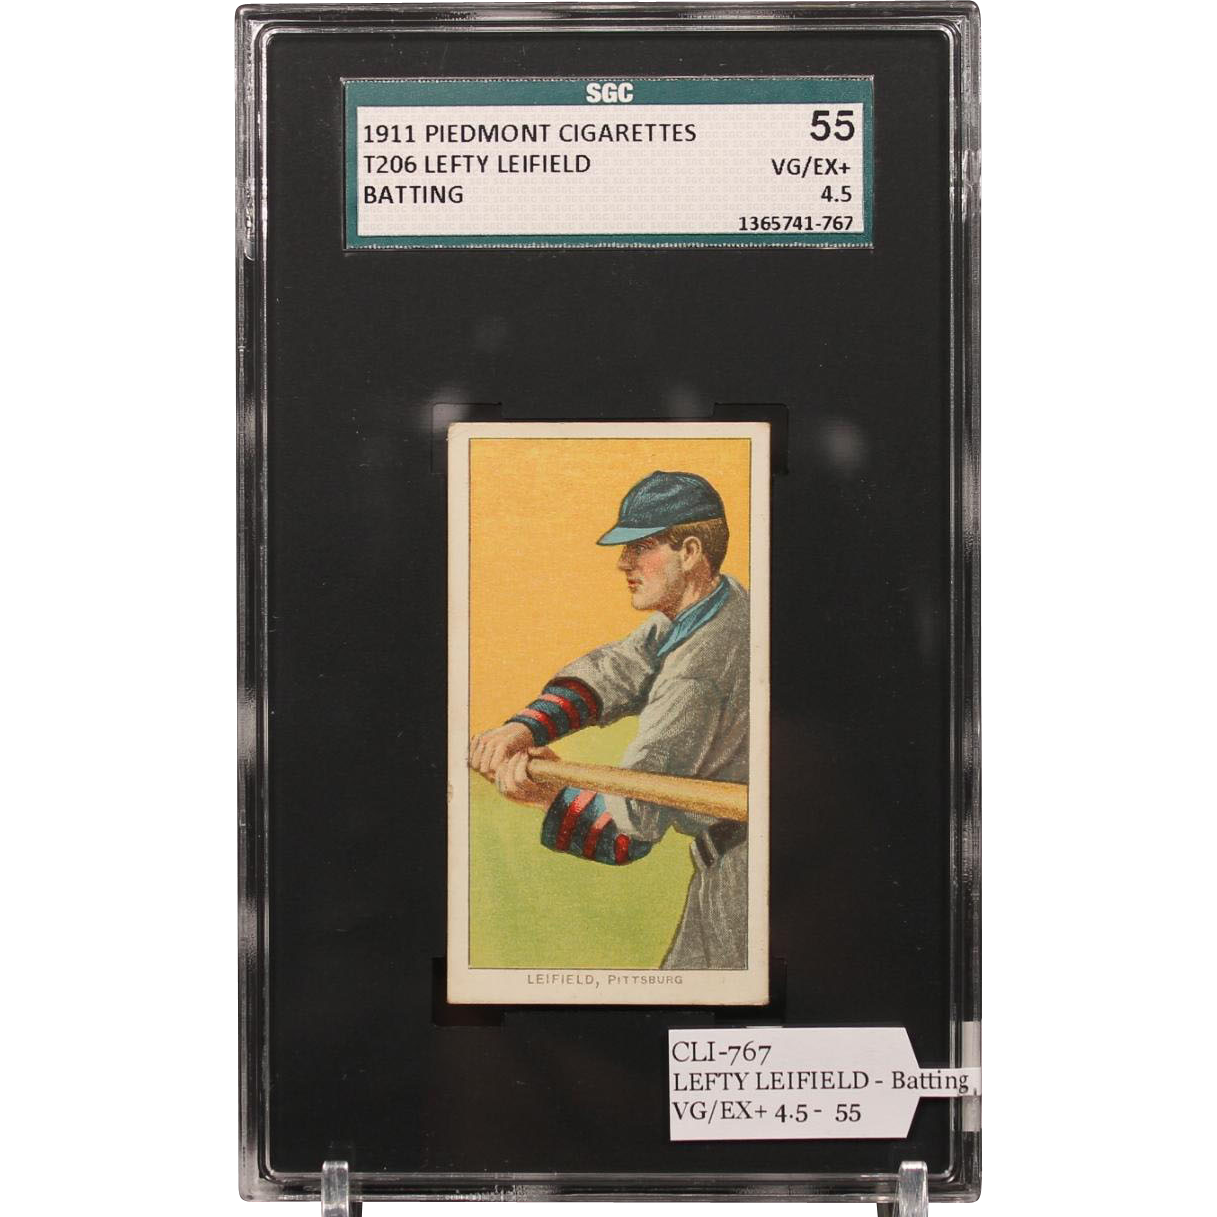 T206 LEFTY LEIFIELD - Batting SGC grade 55 VG/EX+ 4.5